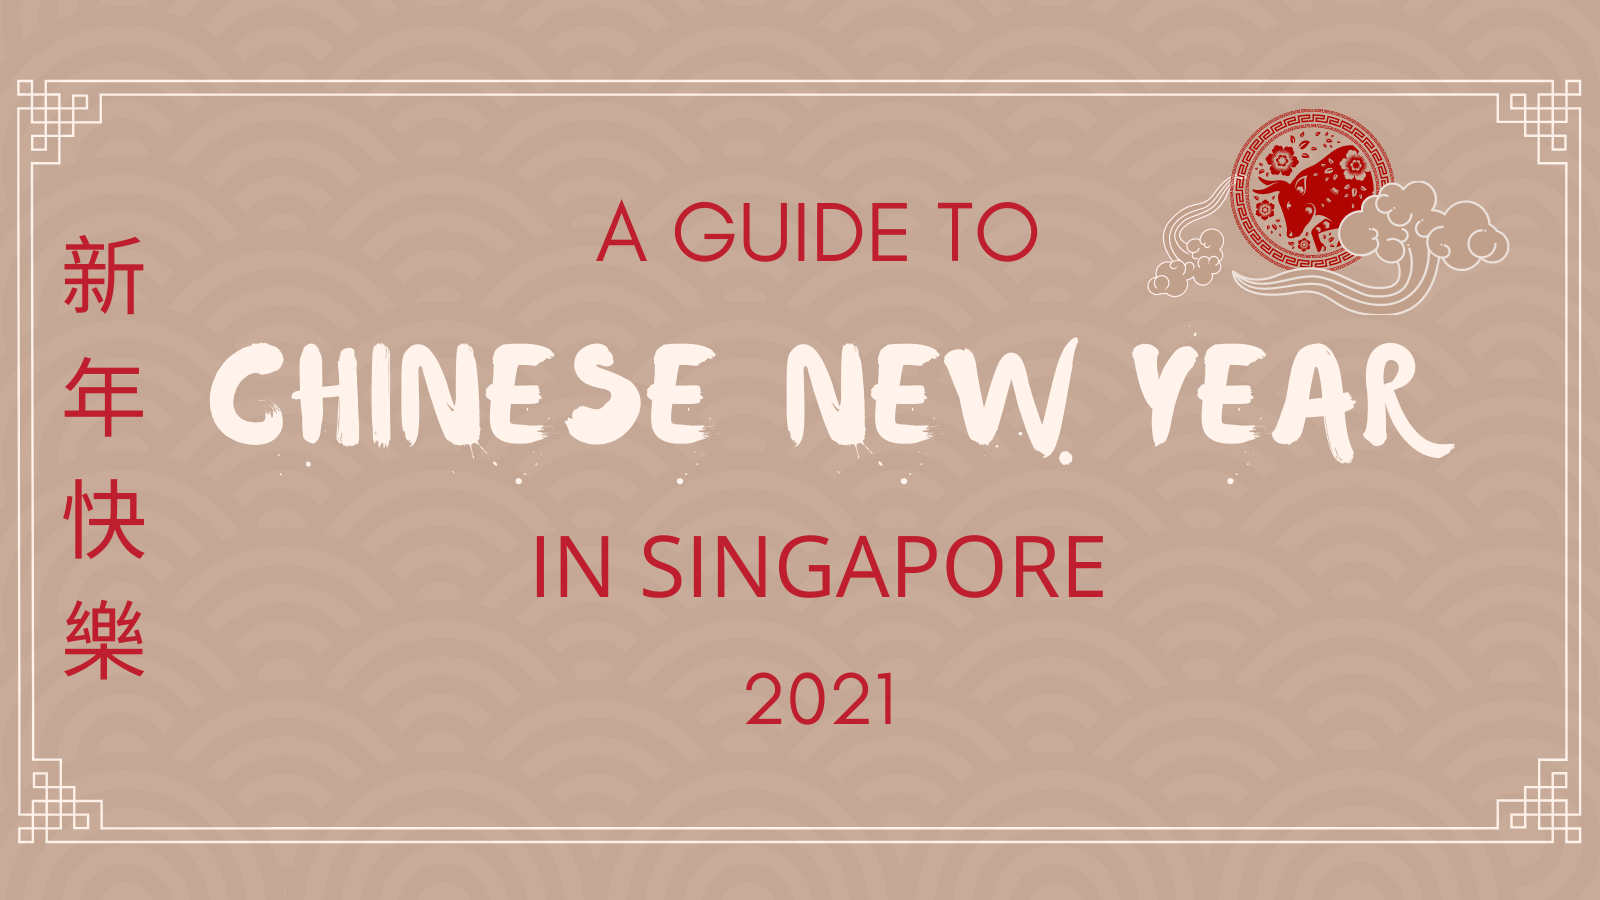 2021: Places to go this Chinese New Year